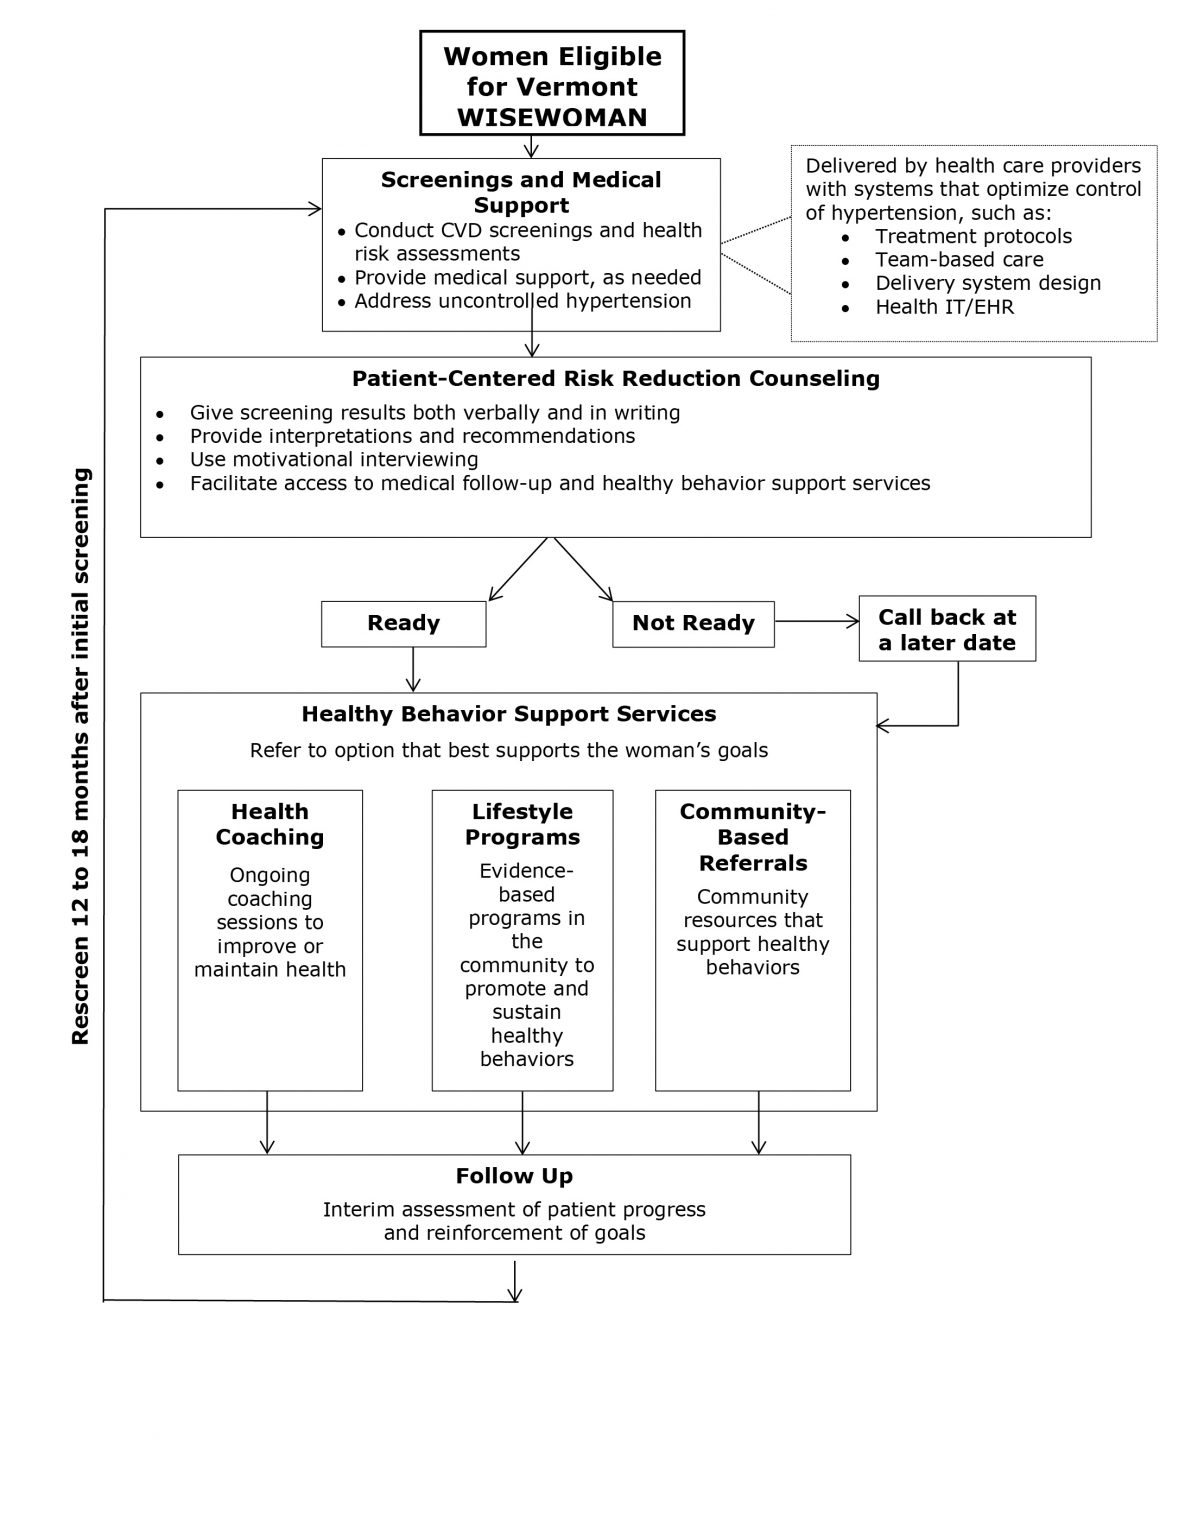 Flow of service delivery for Vermont WISEWOMAN illustrating the process by which eligible women moved from initial screening through the lifestyle program to follow-up. The flow may vary depending on the program structure. Abbreviations: CVD, cardiovascular disease; IT/EHR, information technology/electronic health record; WISEWOMAN, Well Integrated Screening and Evaluation for Women Across the Nation.